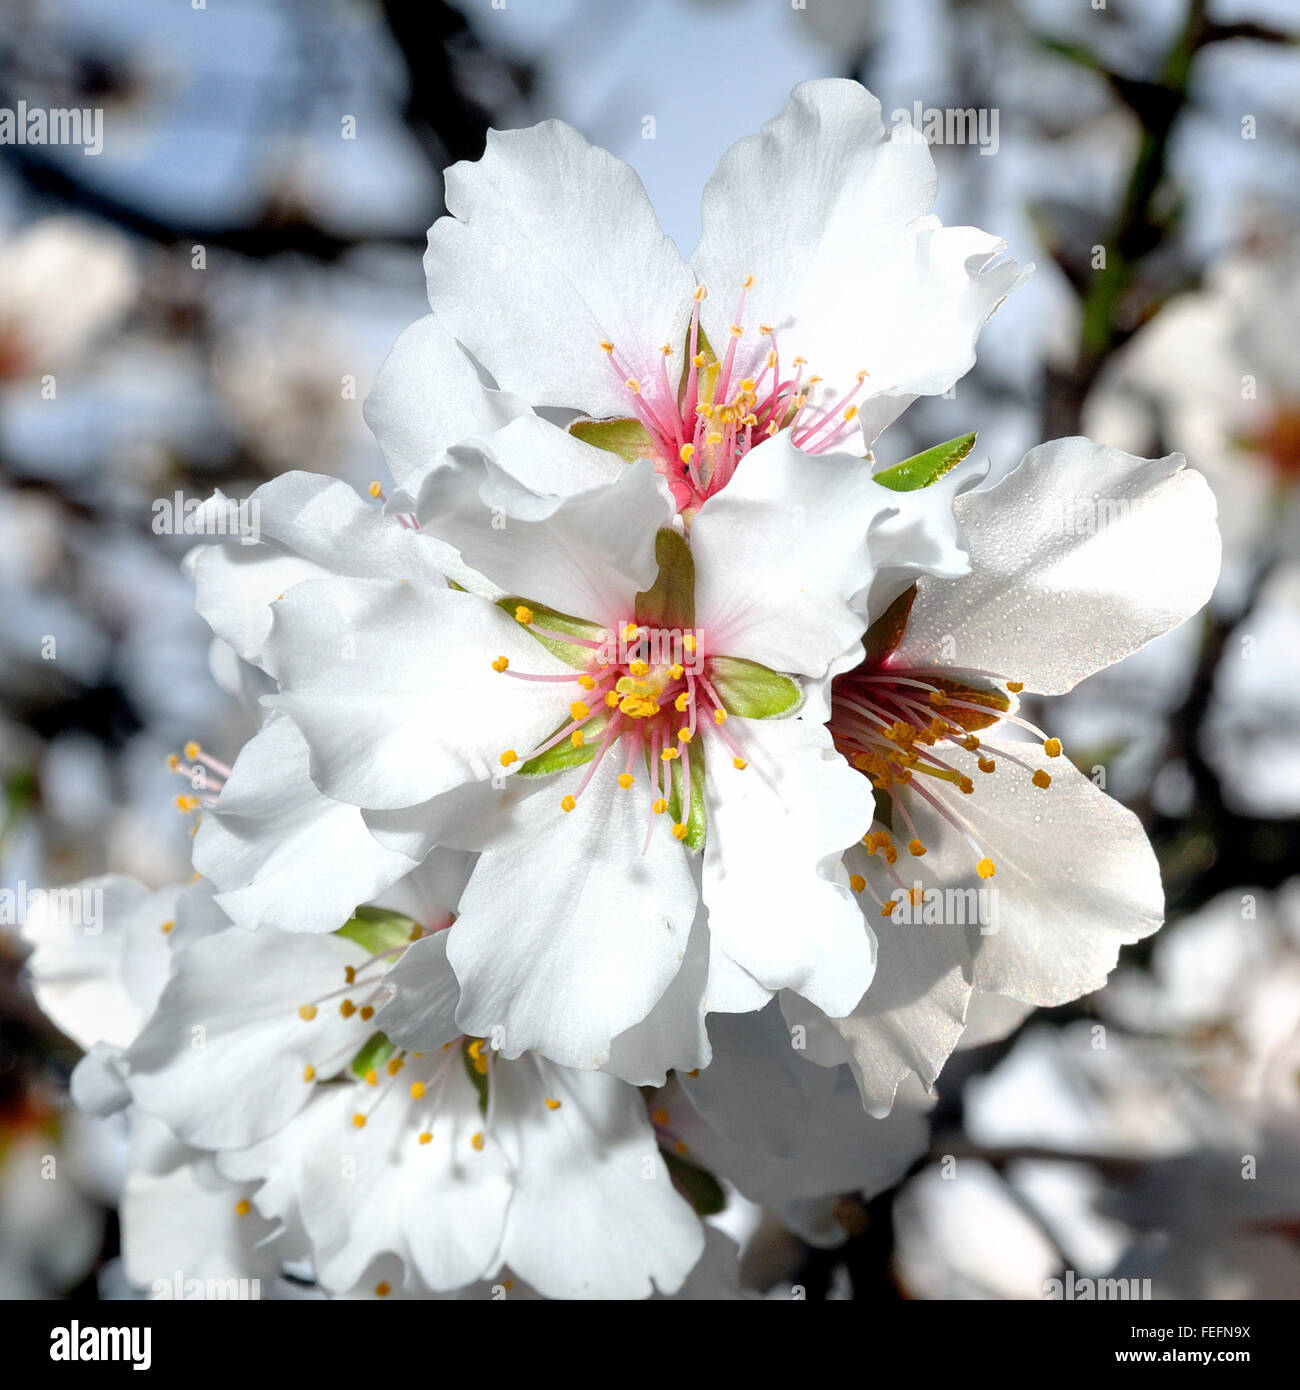 Picture of of the almond tree in blossoms, photographed in the sunlight with the aid of a flash - Stock Image